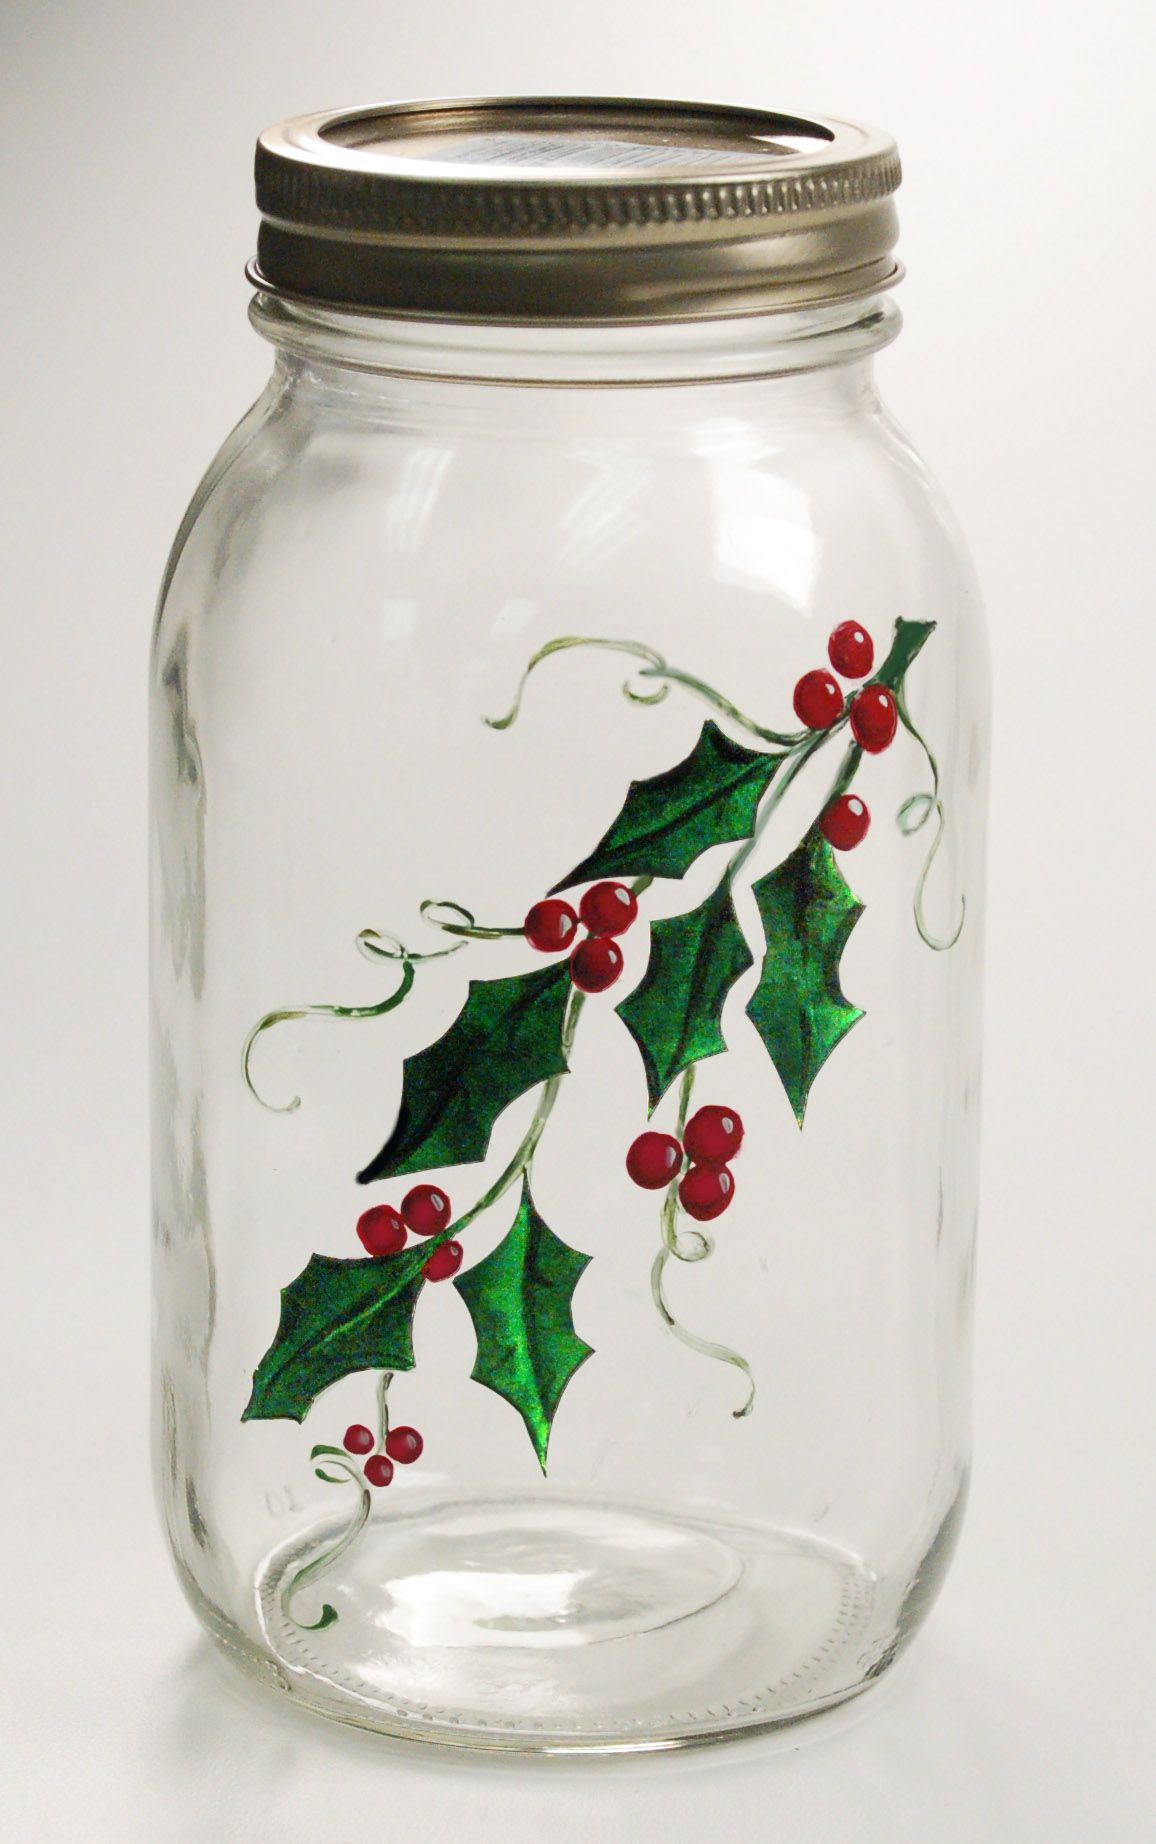 Christmas Gift Quart Mason Jar With Painted Holly Crafts With Glass Jars Christmas Jars Painting Glass Jars